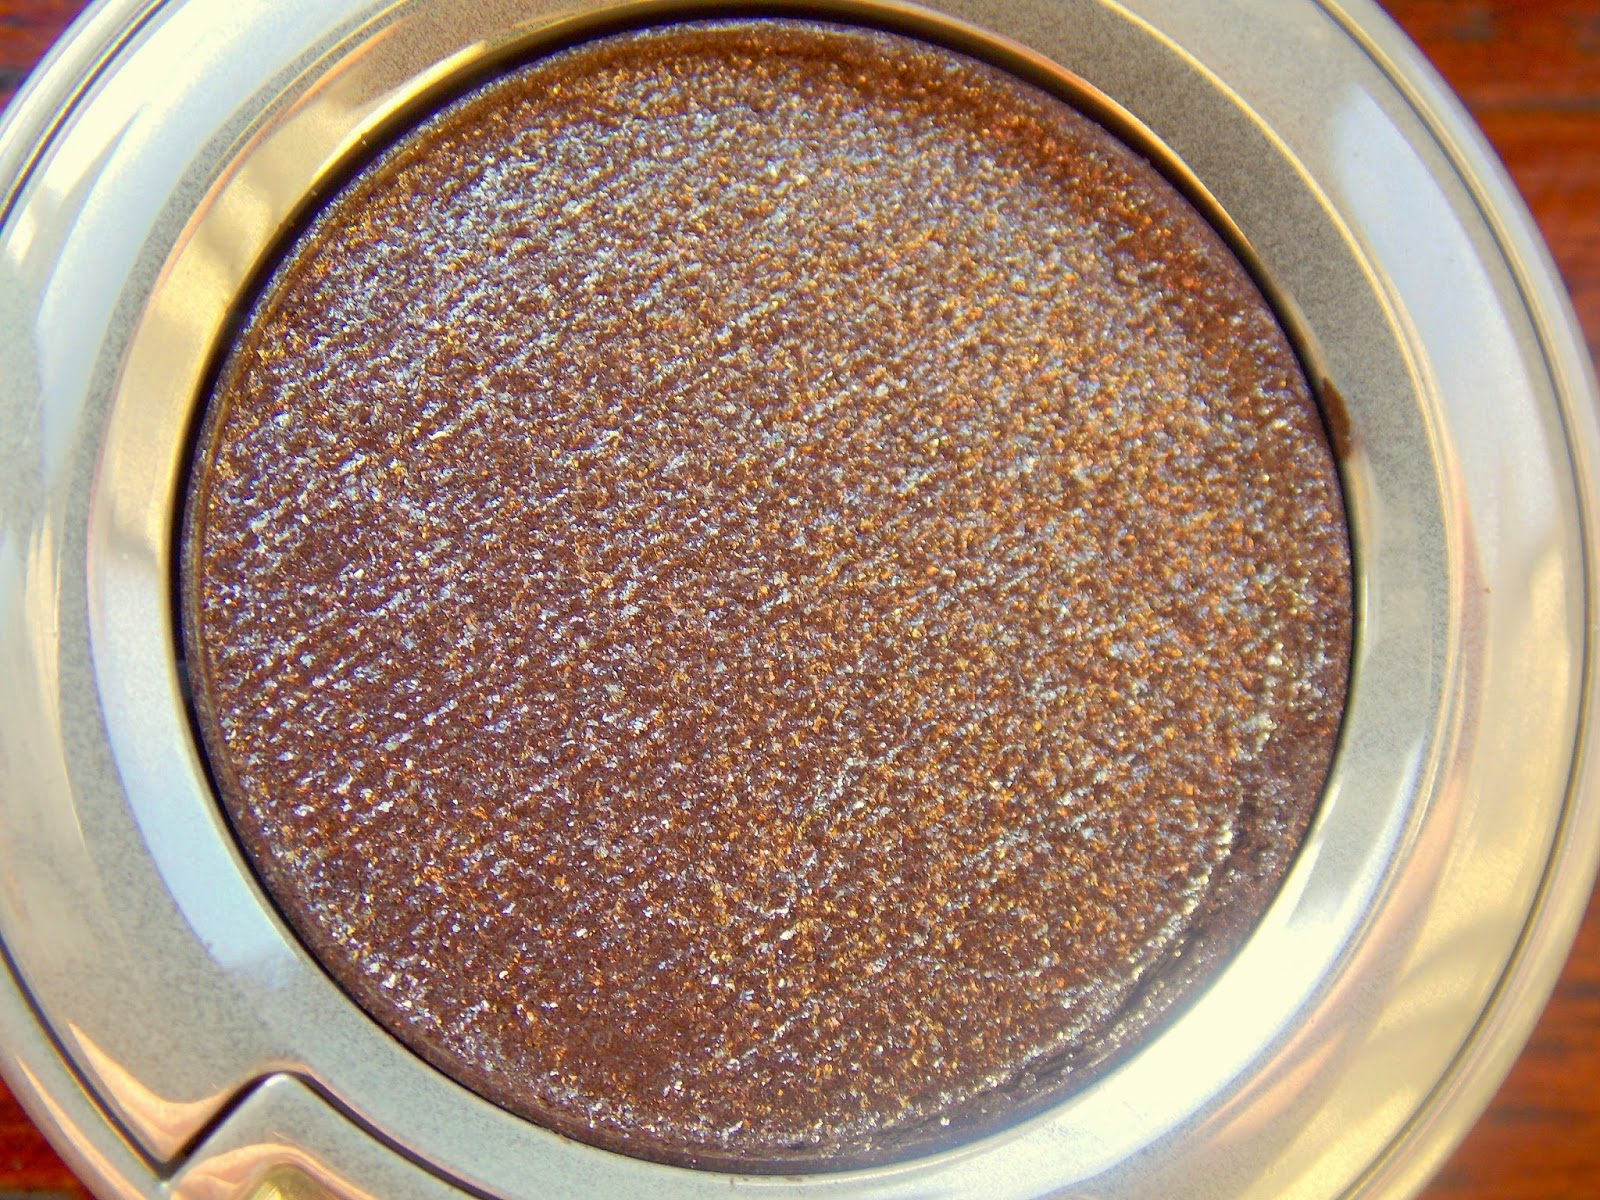 Urban Decay Moondust Eyeshadow in Diamond Dog Review